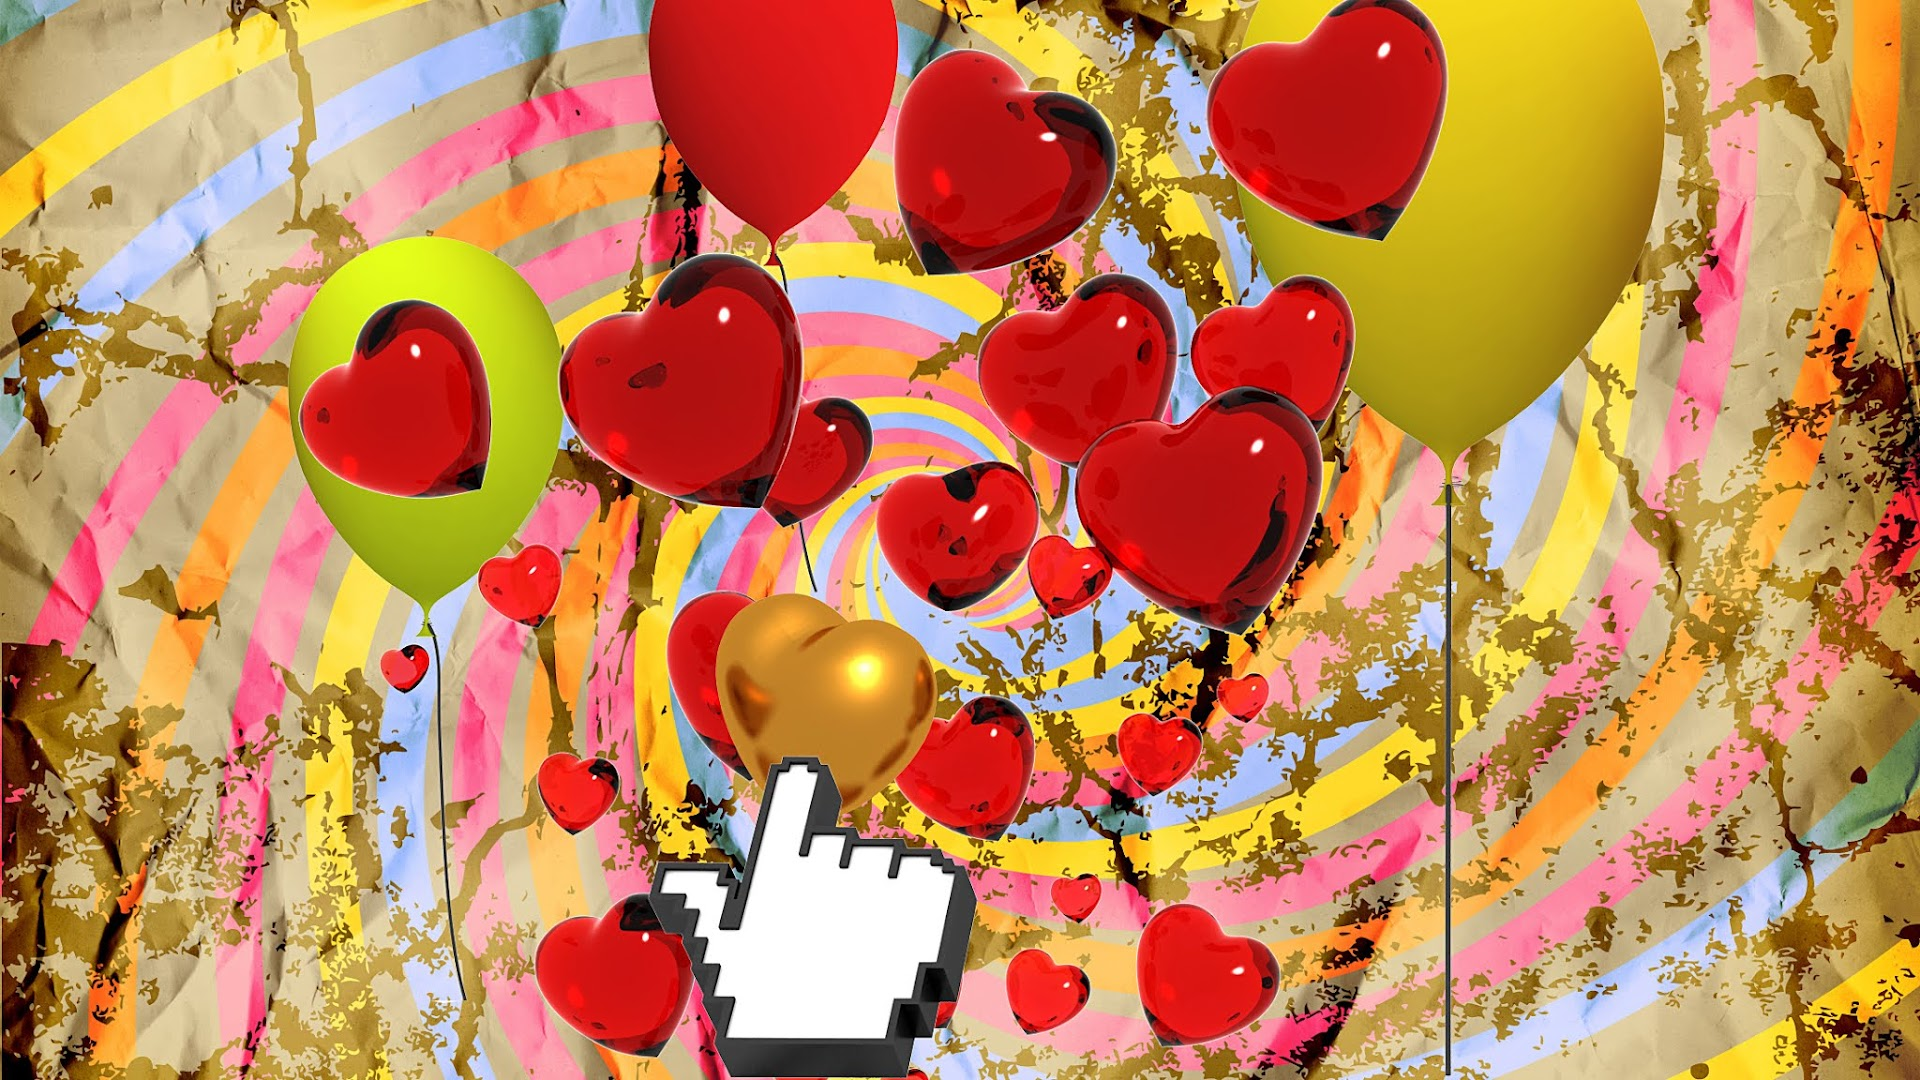 Hearts and Balloons Grunge Background